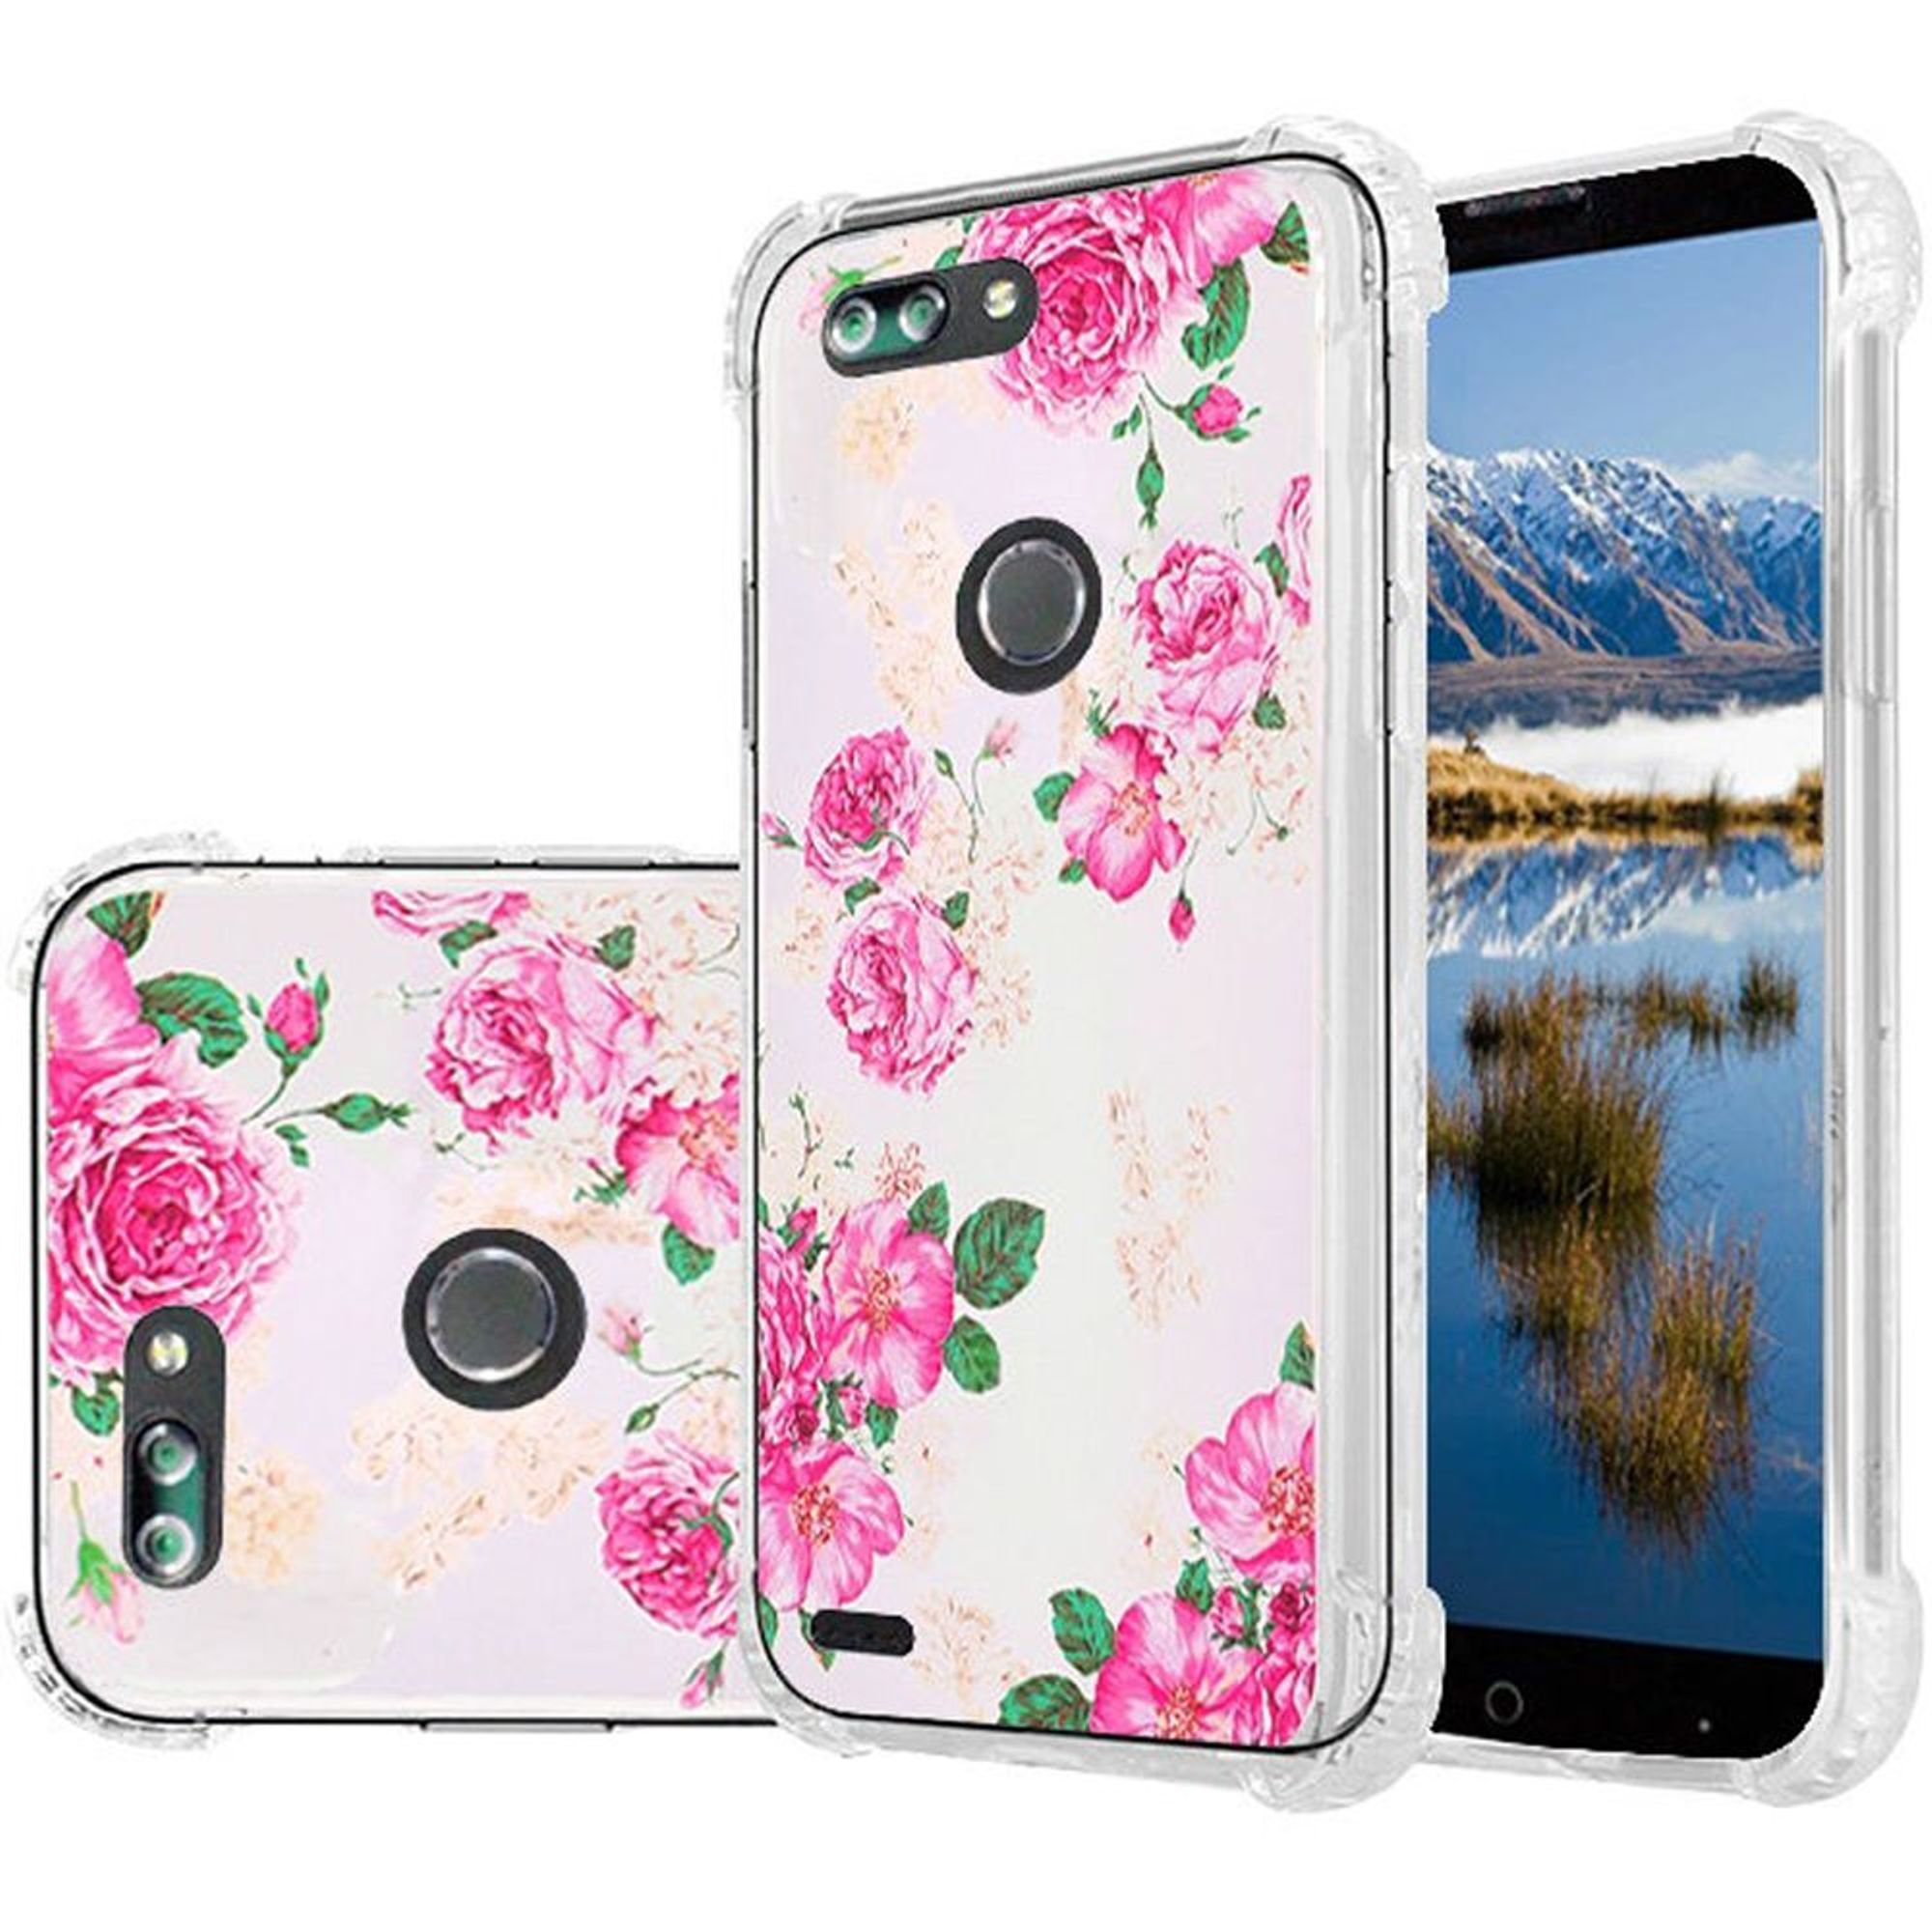 ZTE Blade Z Max Case, by HR Wireless Rose Blossom Shockproof Dual Layer Hybrid Hard Plastic/Soft TPU Rubber Case Cover For ZTE Blade Z Max, Pink/White